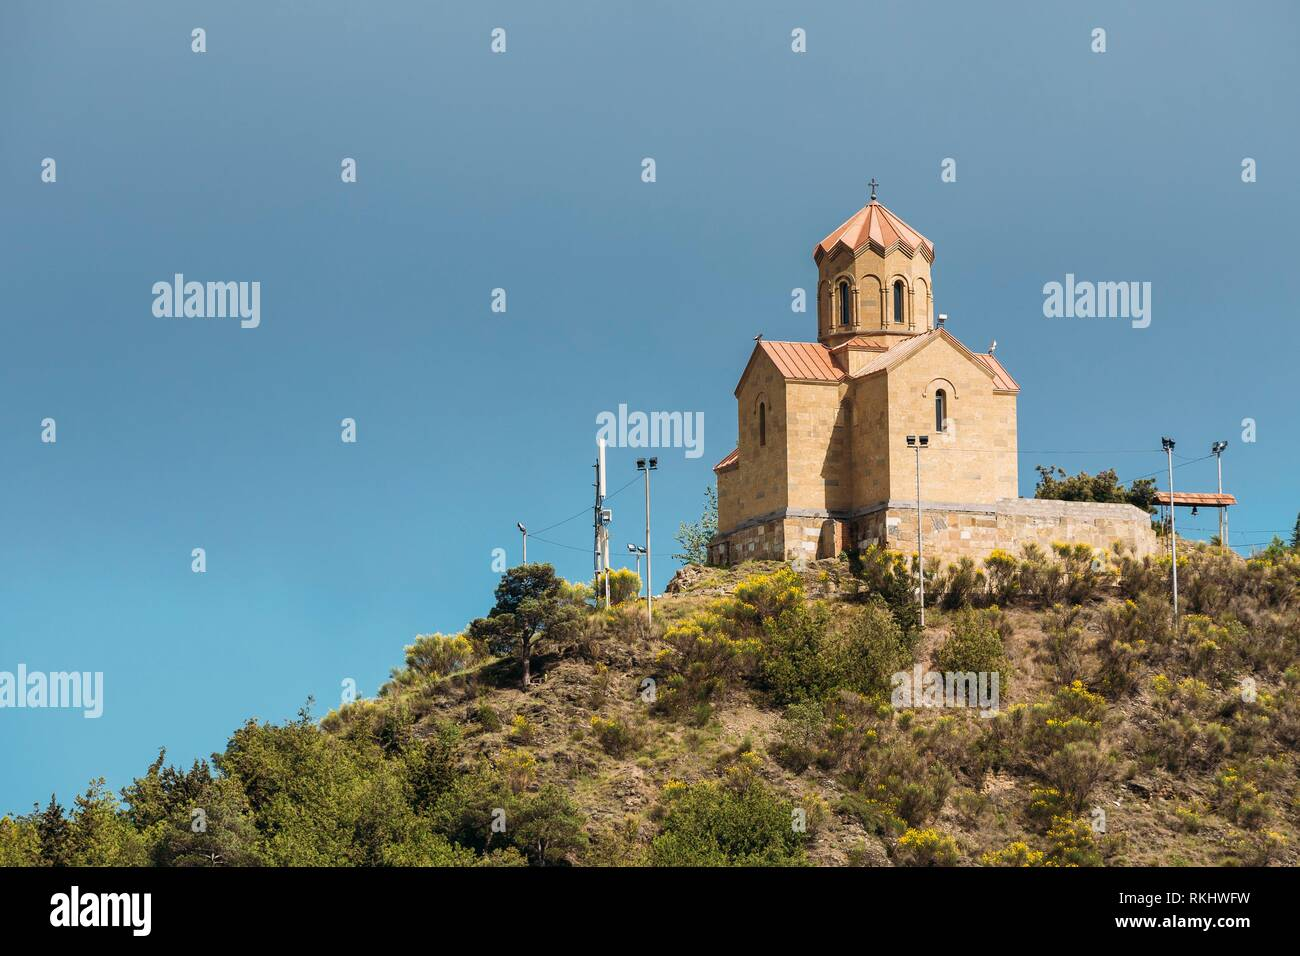 Tabor Monastery of the Transformation in Tbilisi, Georgia. Hilltop Church. - Stock Image